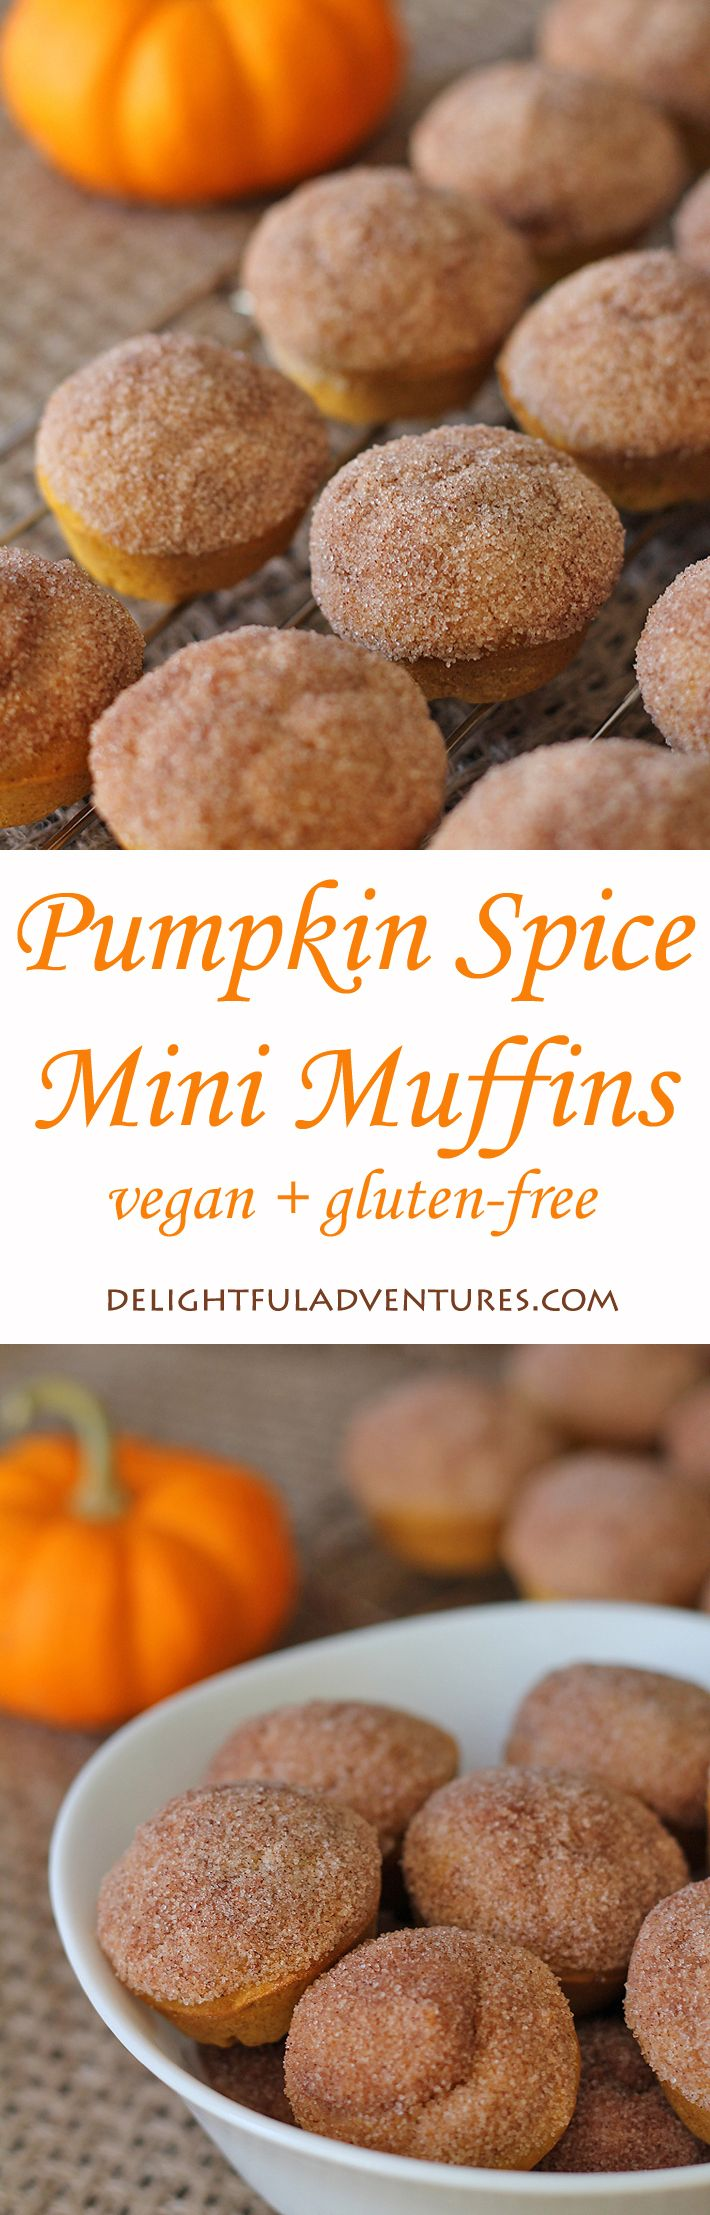 These vegan, gluten-free pumpkin spice mini muffins are the perfect treat for fall—or any other time of year. Enjoy them with a latte or on their own!